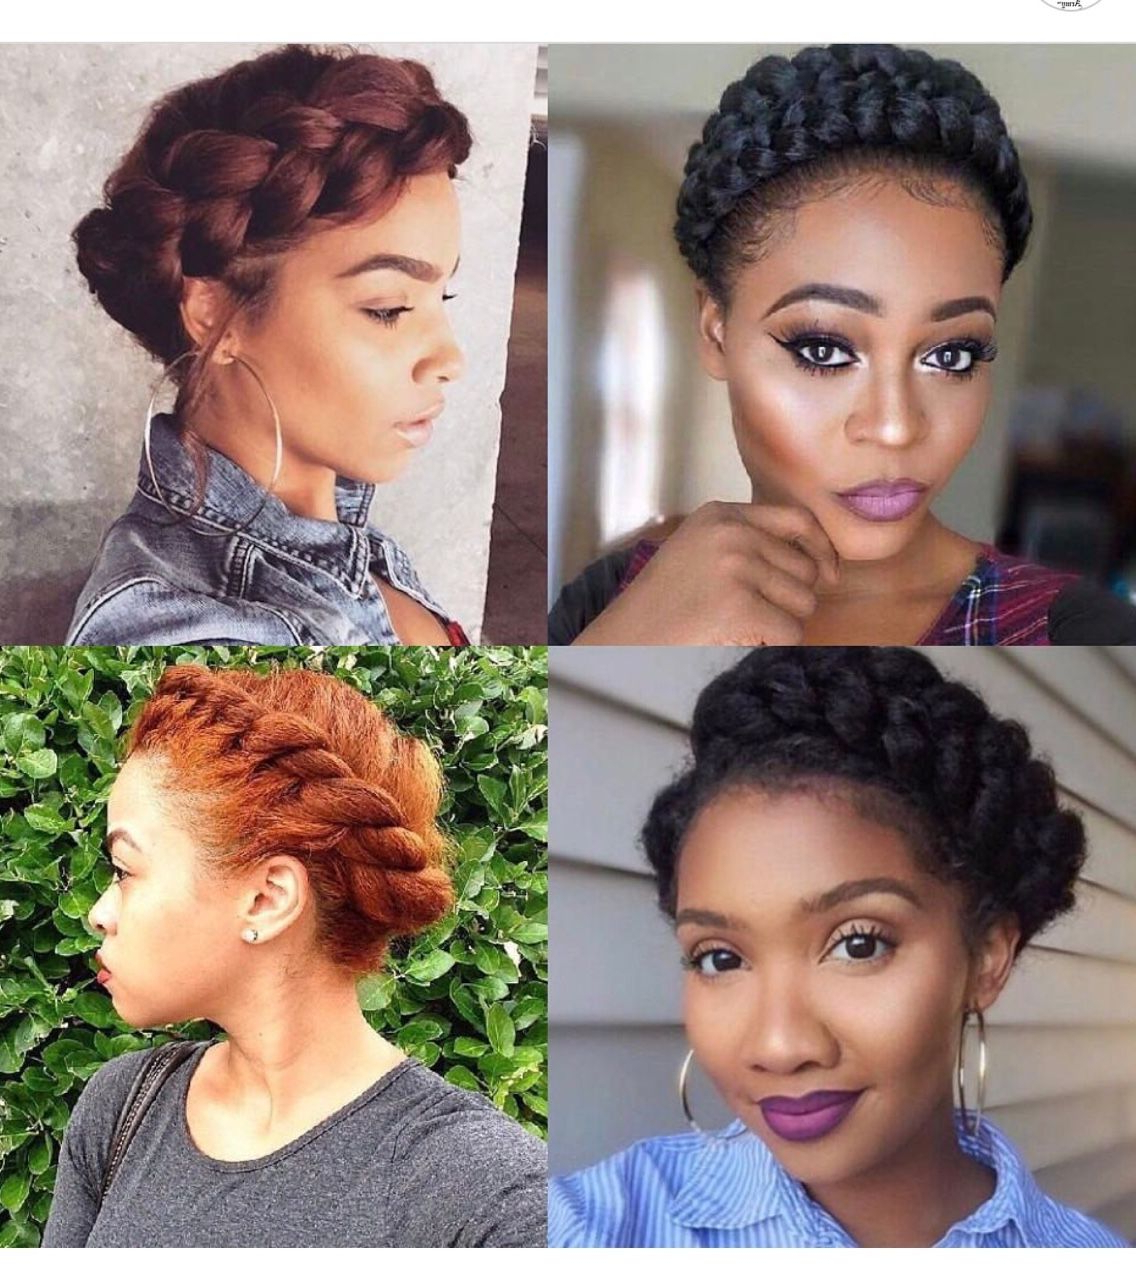 Most Current Braided Halo Hairstyles Throughout The Halo Braid Follow For More Styles Www (View 9 of 20)